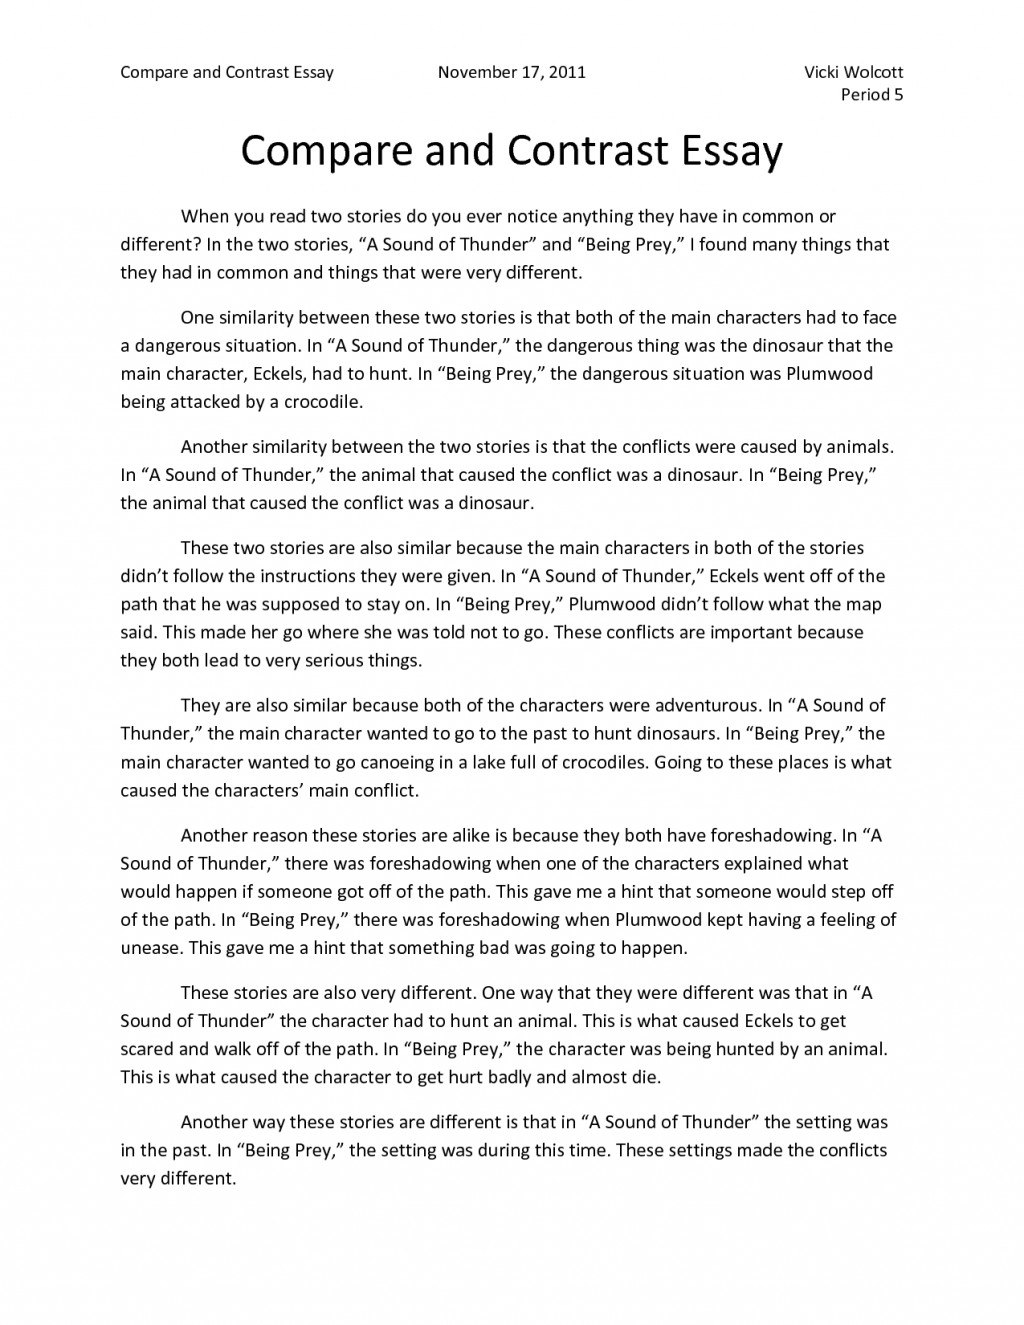 004 Essay Example Compare And Contrast Gallery Template Drawing Art Throughout College Examples Introduction Question Scholarship Free Edexcel Conclusion Frightening Prompts 5th Grade Rubric Ideas 12th Large